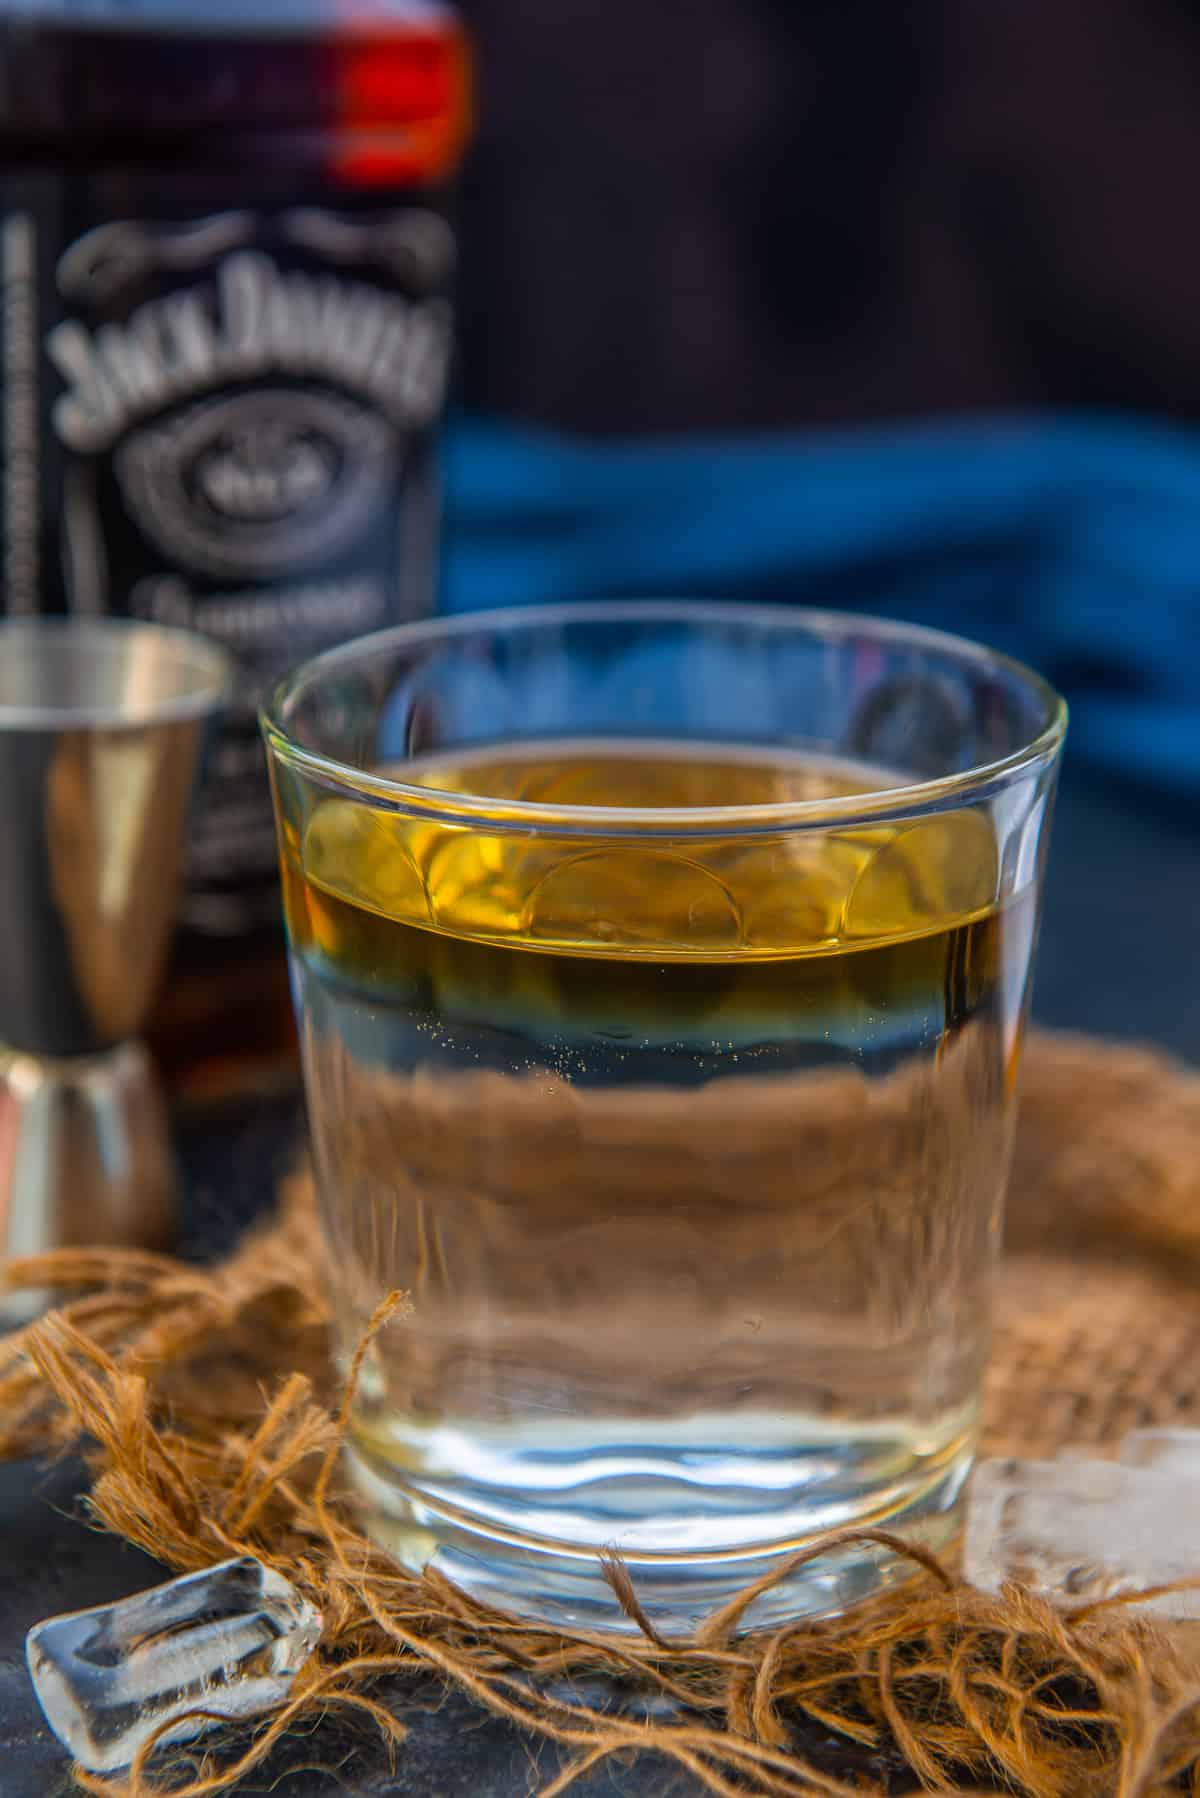 dalgona whiskey made in a glass.